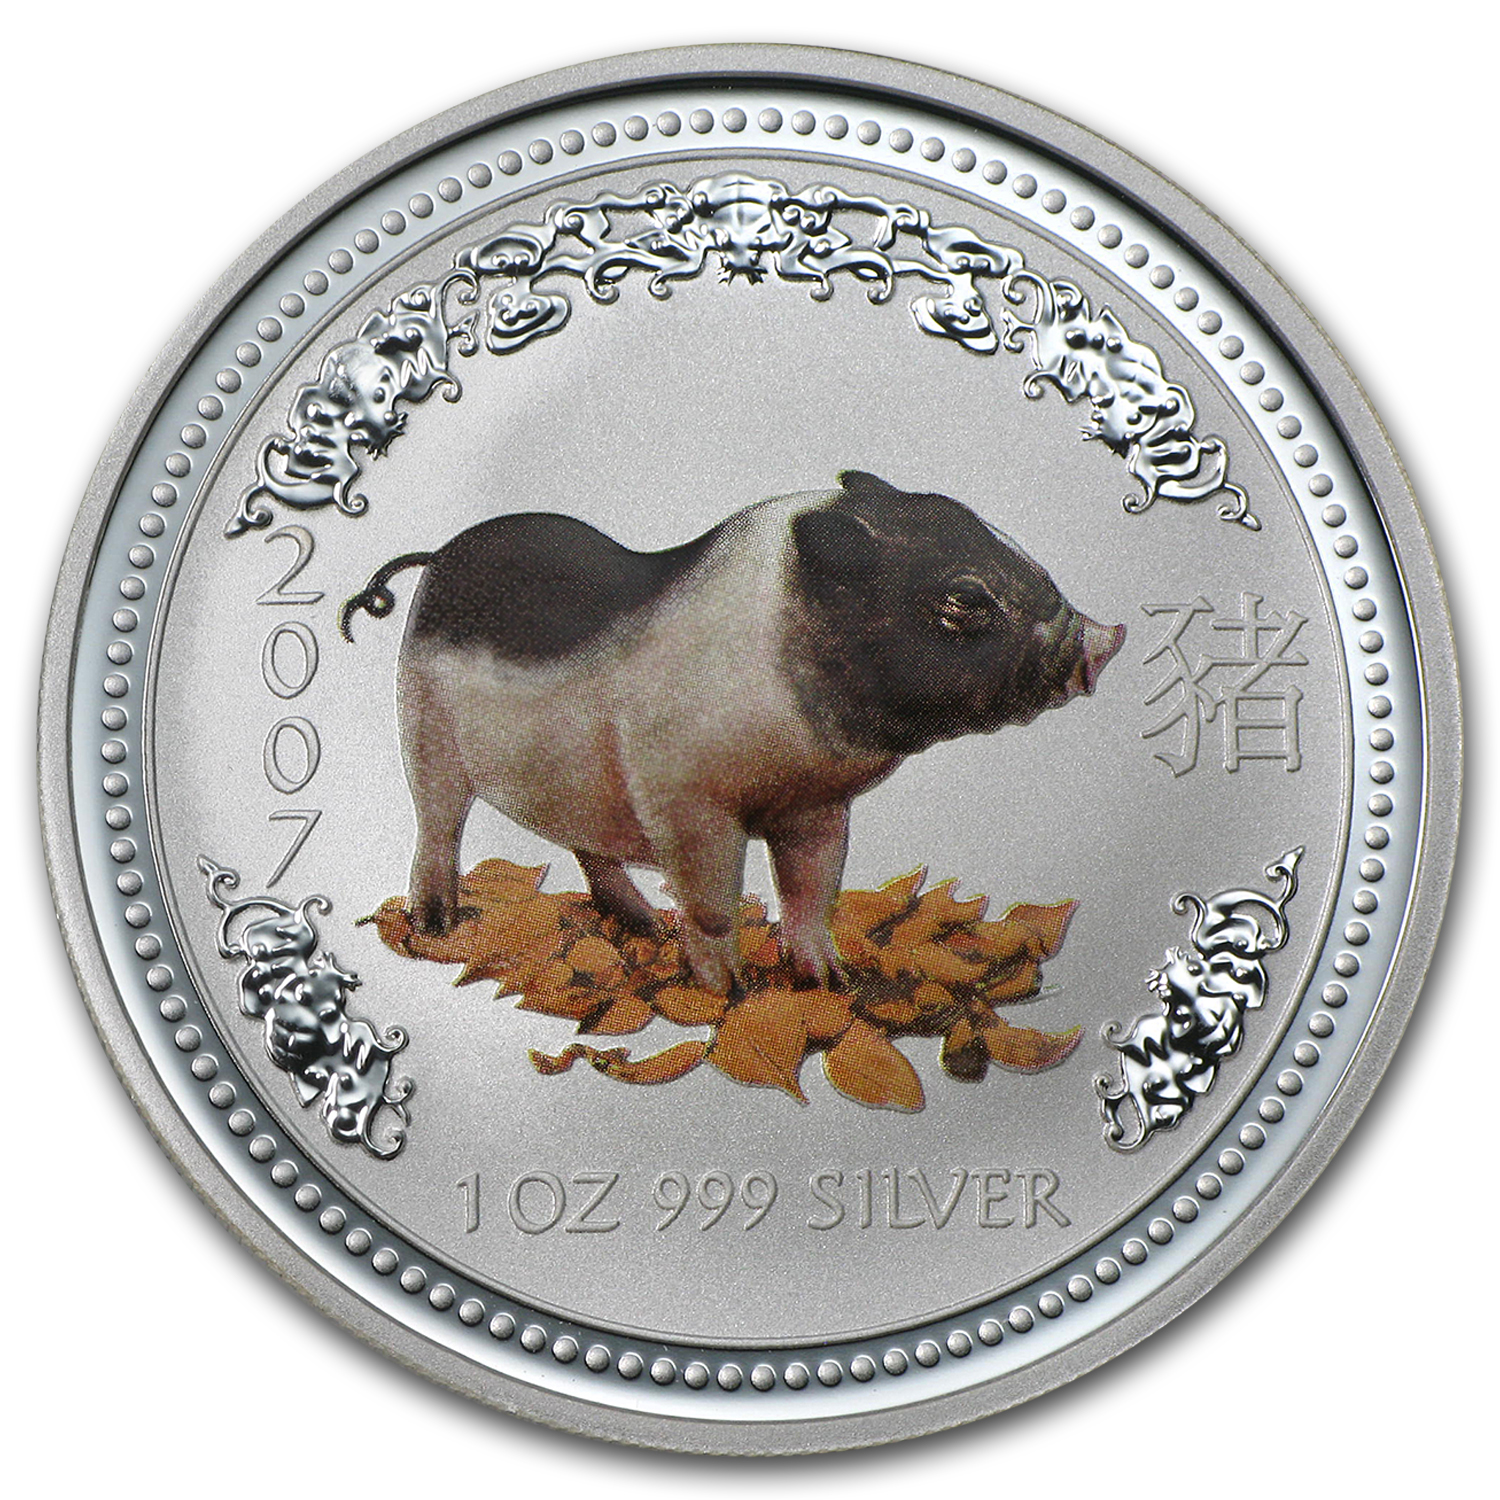 2007 1 oz Silver Australian Year of the Pig BU (Colorized)